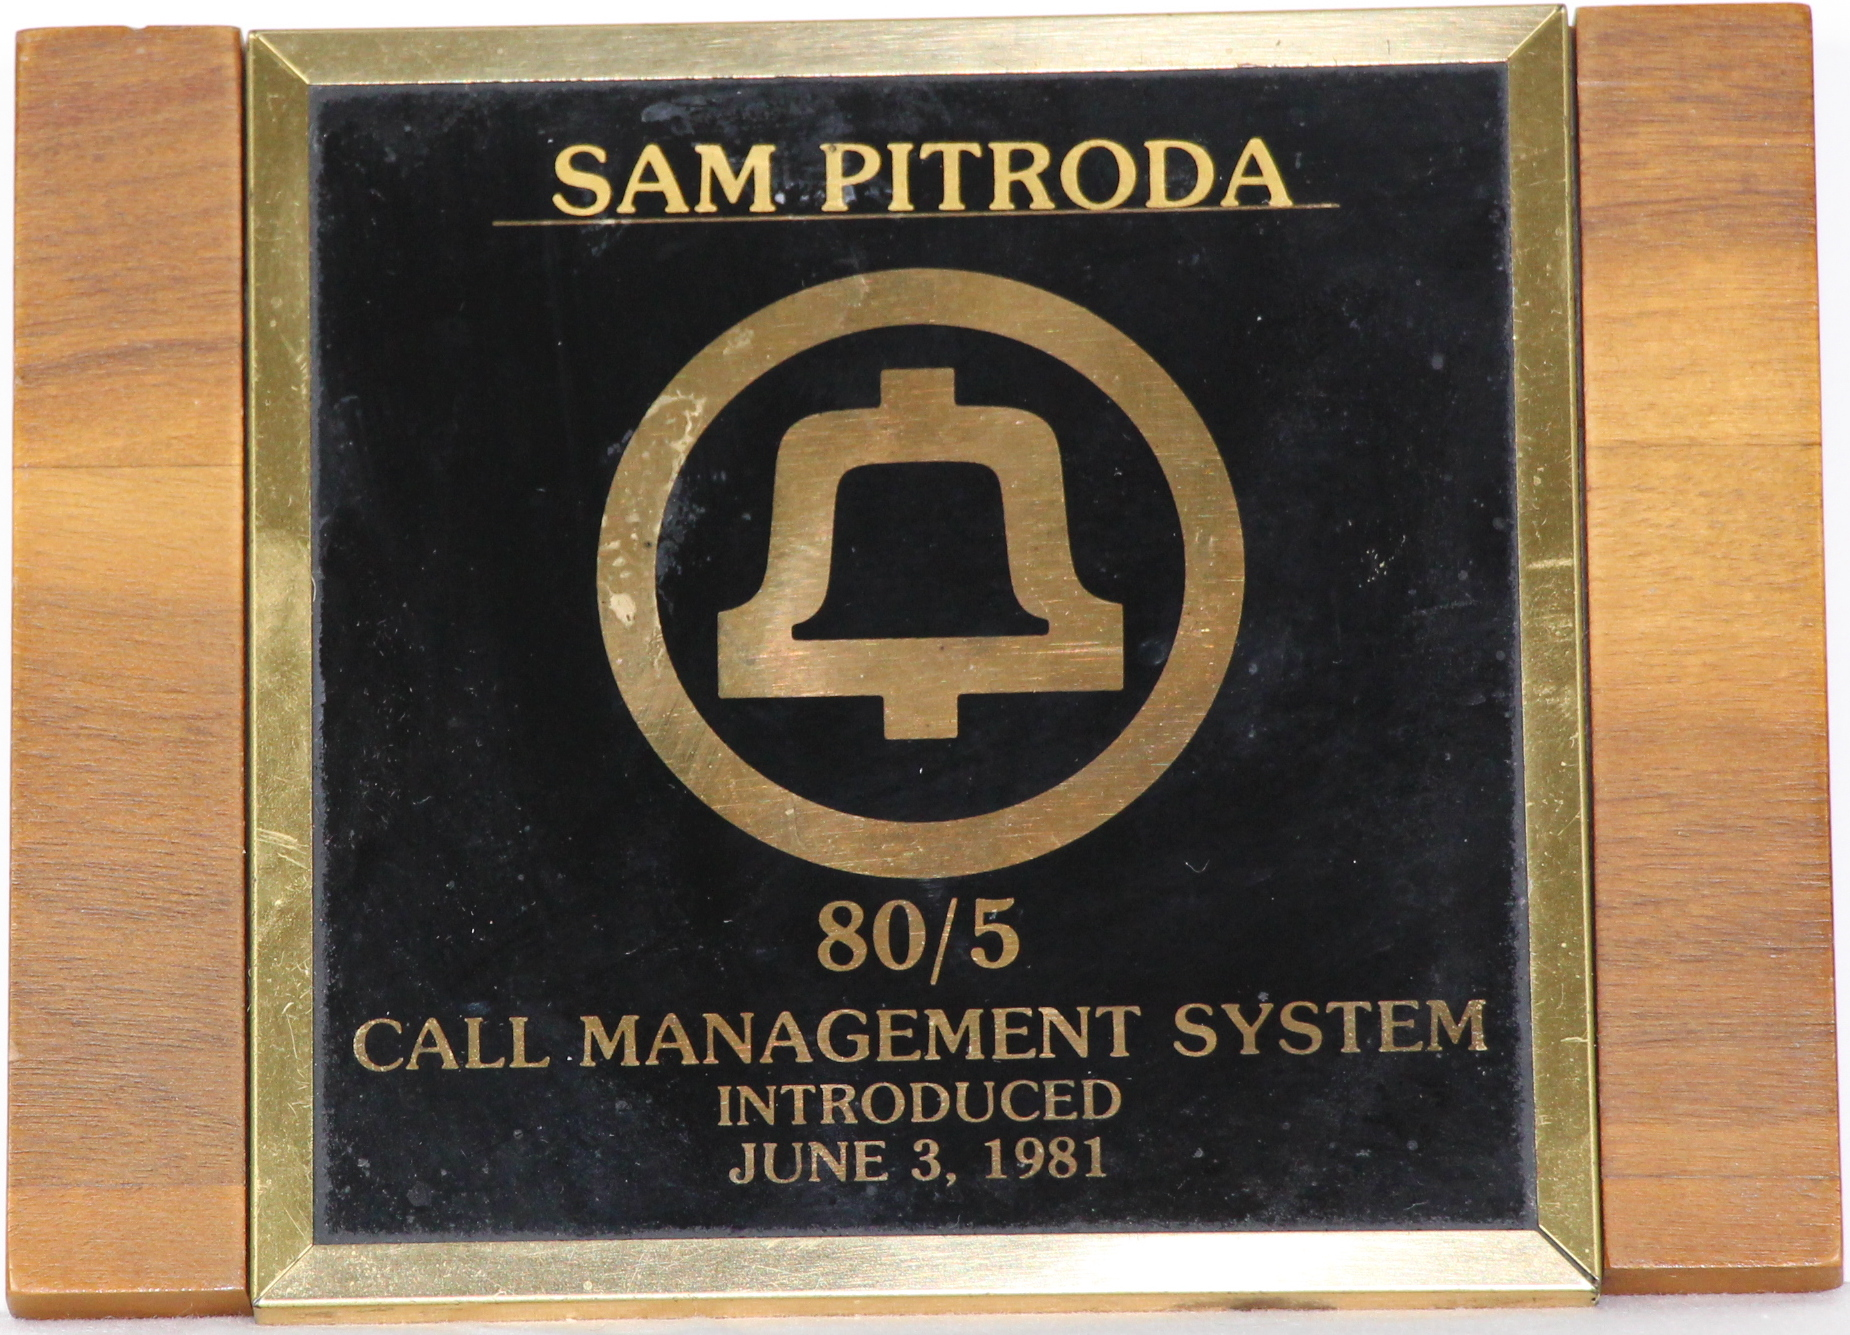 Recognition Award for 80/5 Call Management System Introduced, 1981